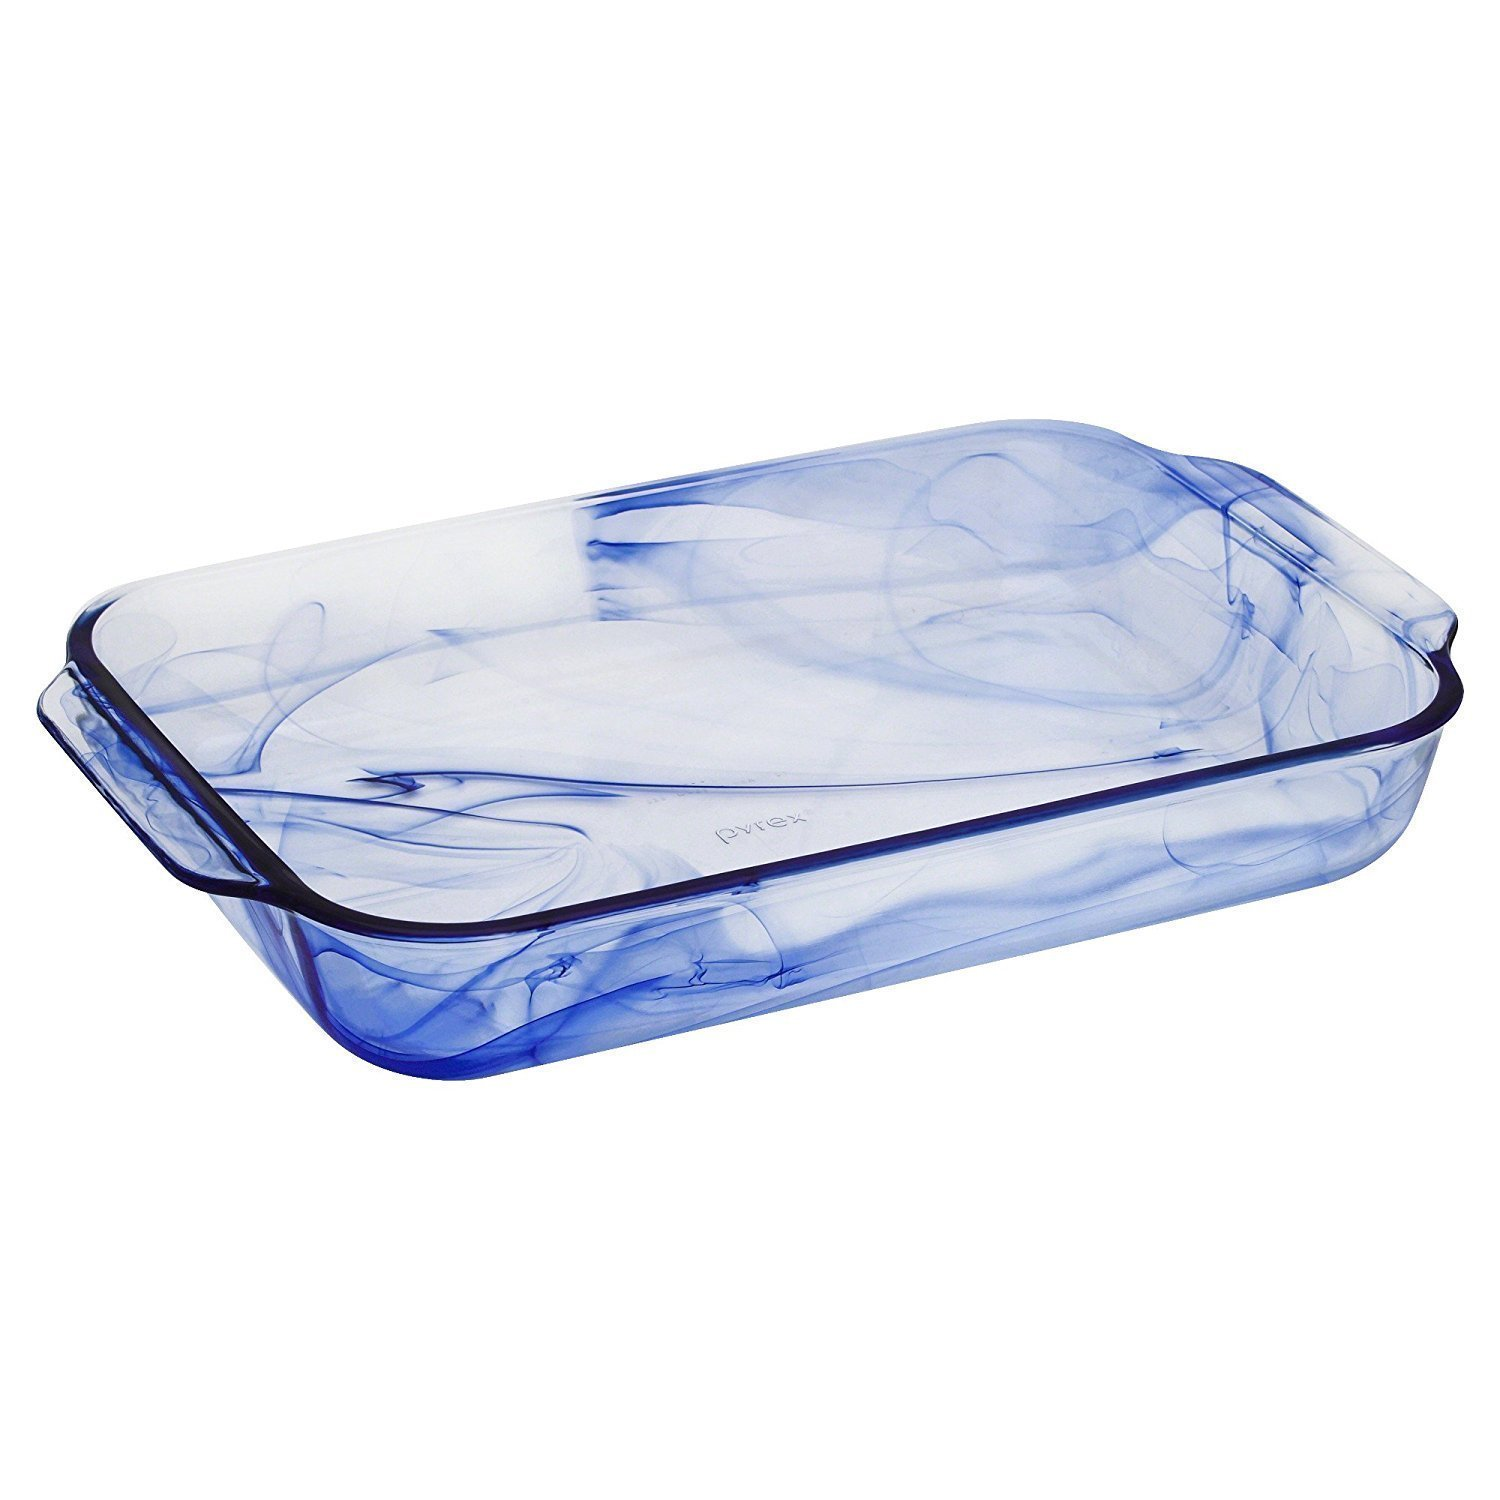 Pyrex Watercolor Collection Blue Lagoon 3 Quart Oblong Baking Dish World Kitchen